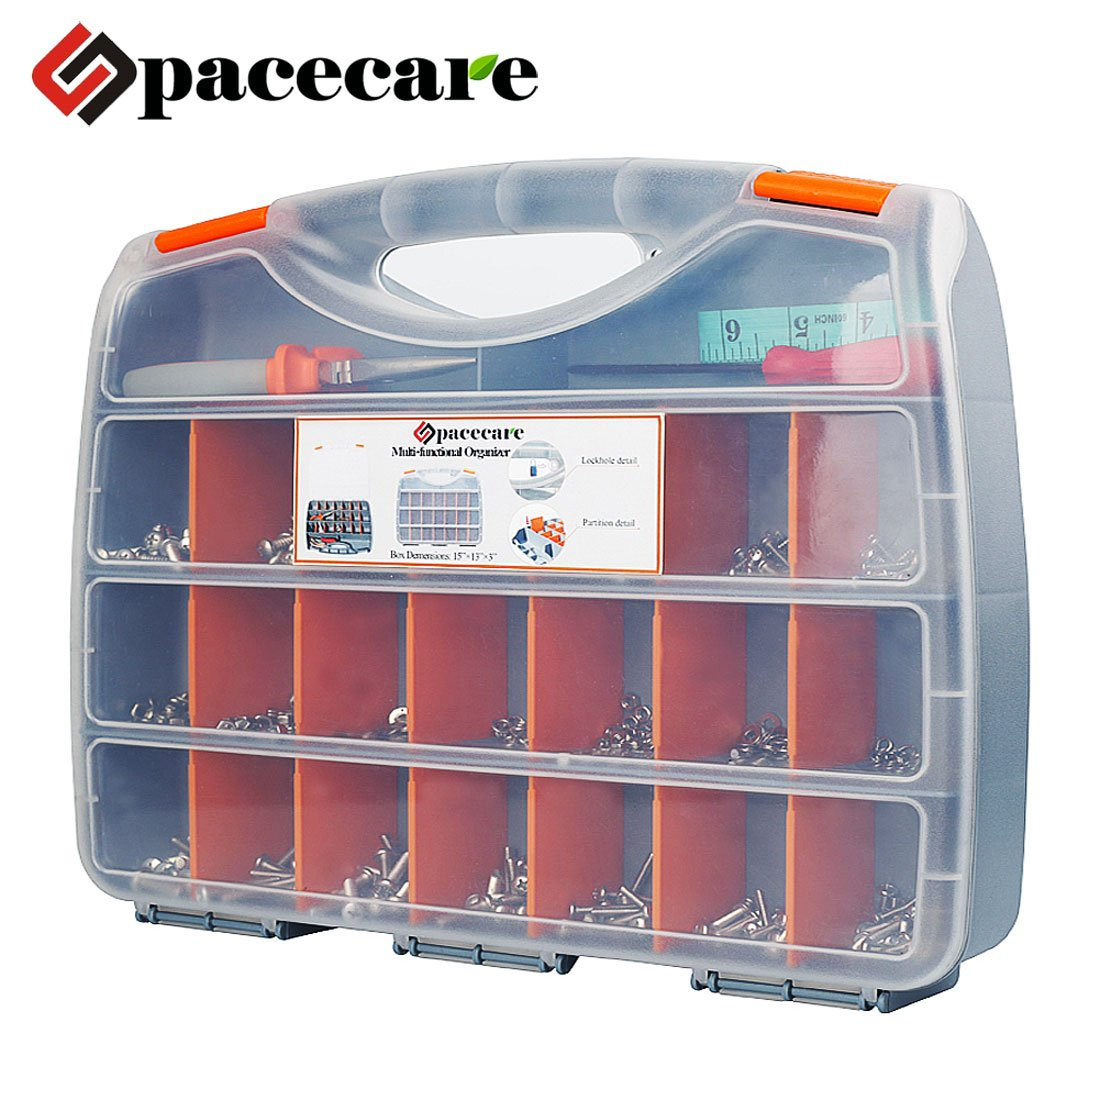 SPACECARE Tool Organizer Storage Box with 18 Removable Dividers, Rule, Srewdriver, Pliers & Screw Assortment Kit, 755 Pieces